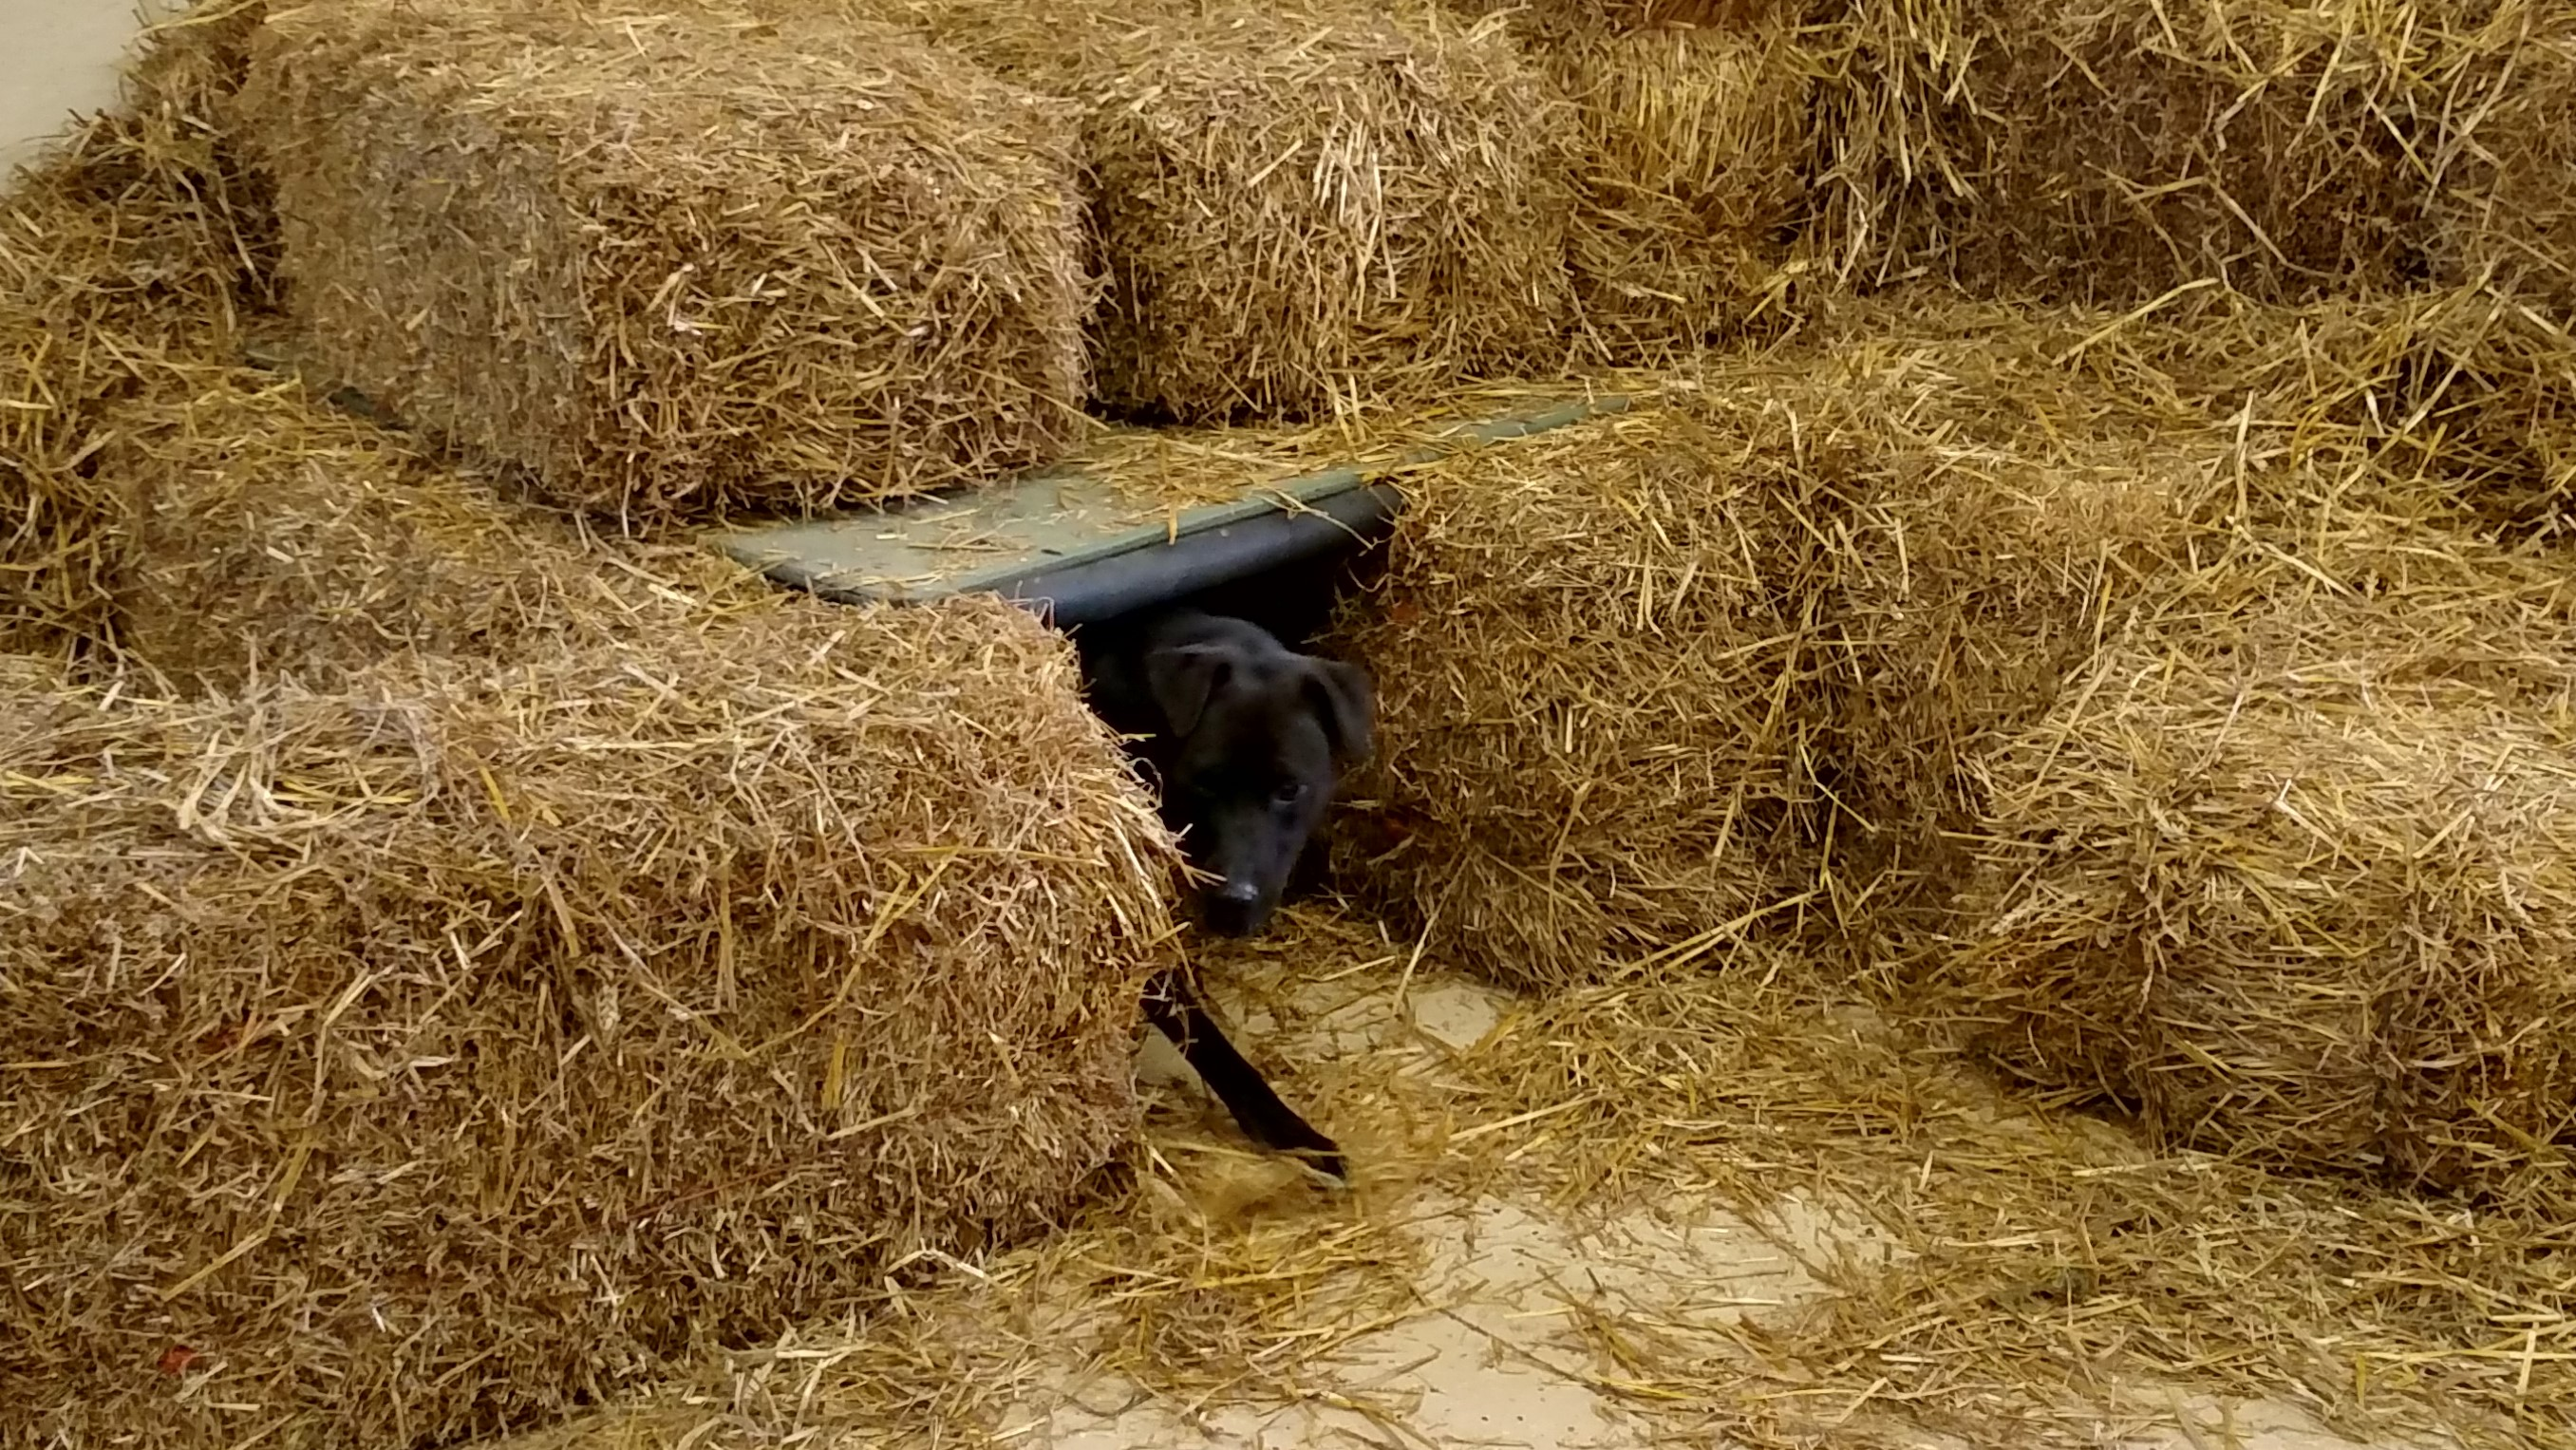 Black dog coming out of tunnel